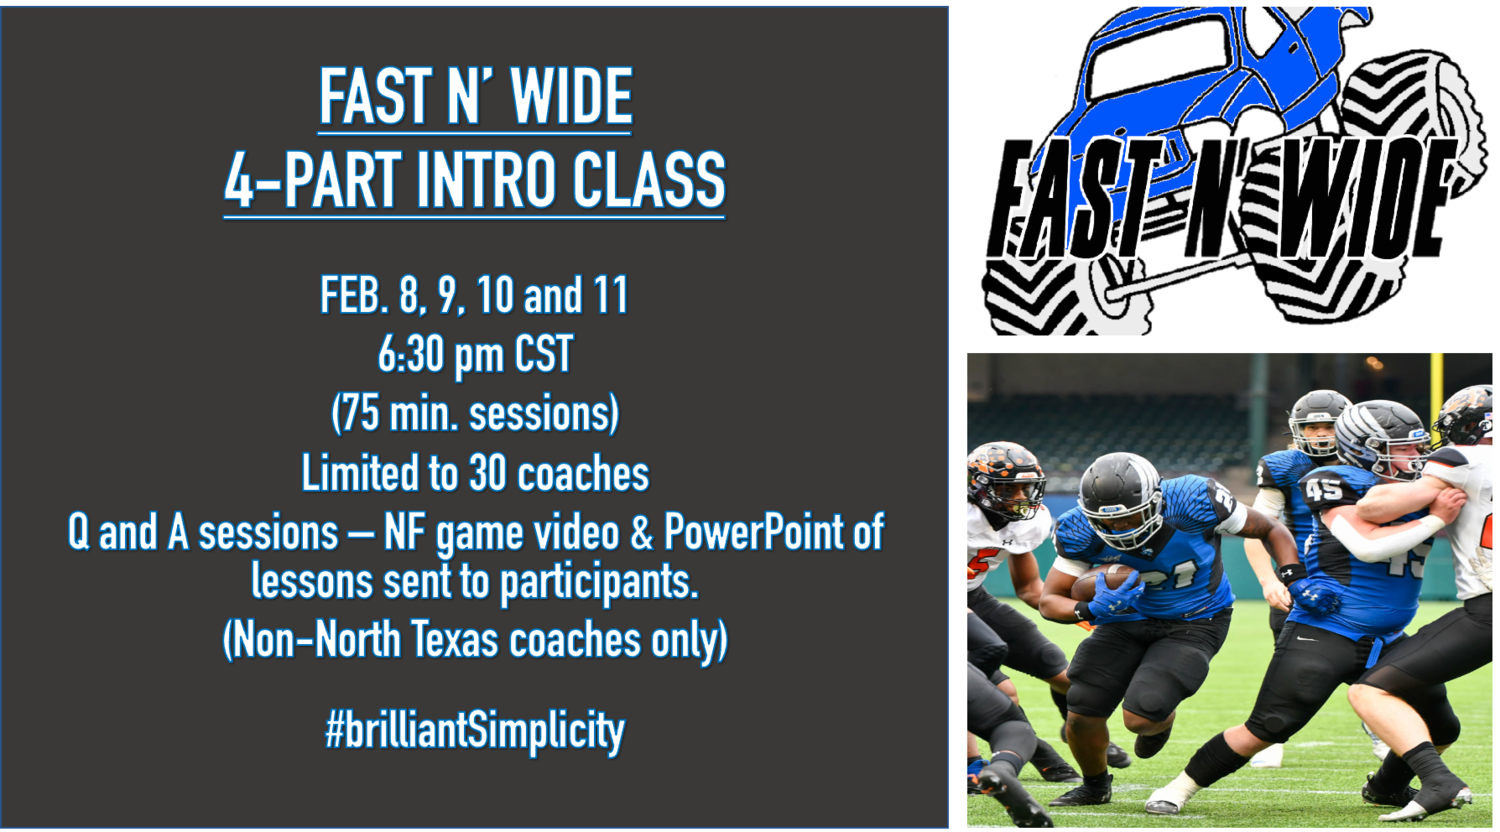 FAST N' WIDE - 5 HOUR INTRO. CLASS #2 -  *SCHEDULE CHANGE FEB. 9, 10, 16 and 17